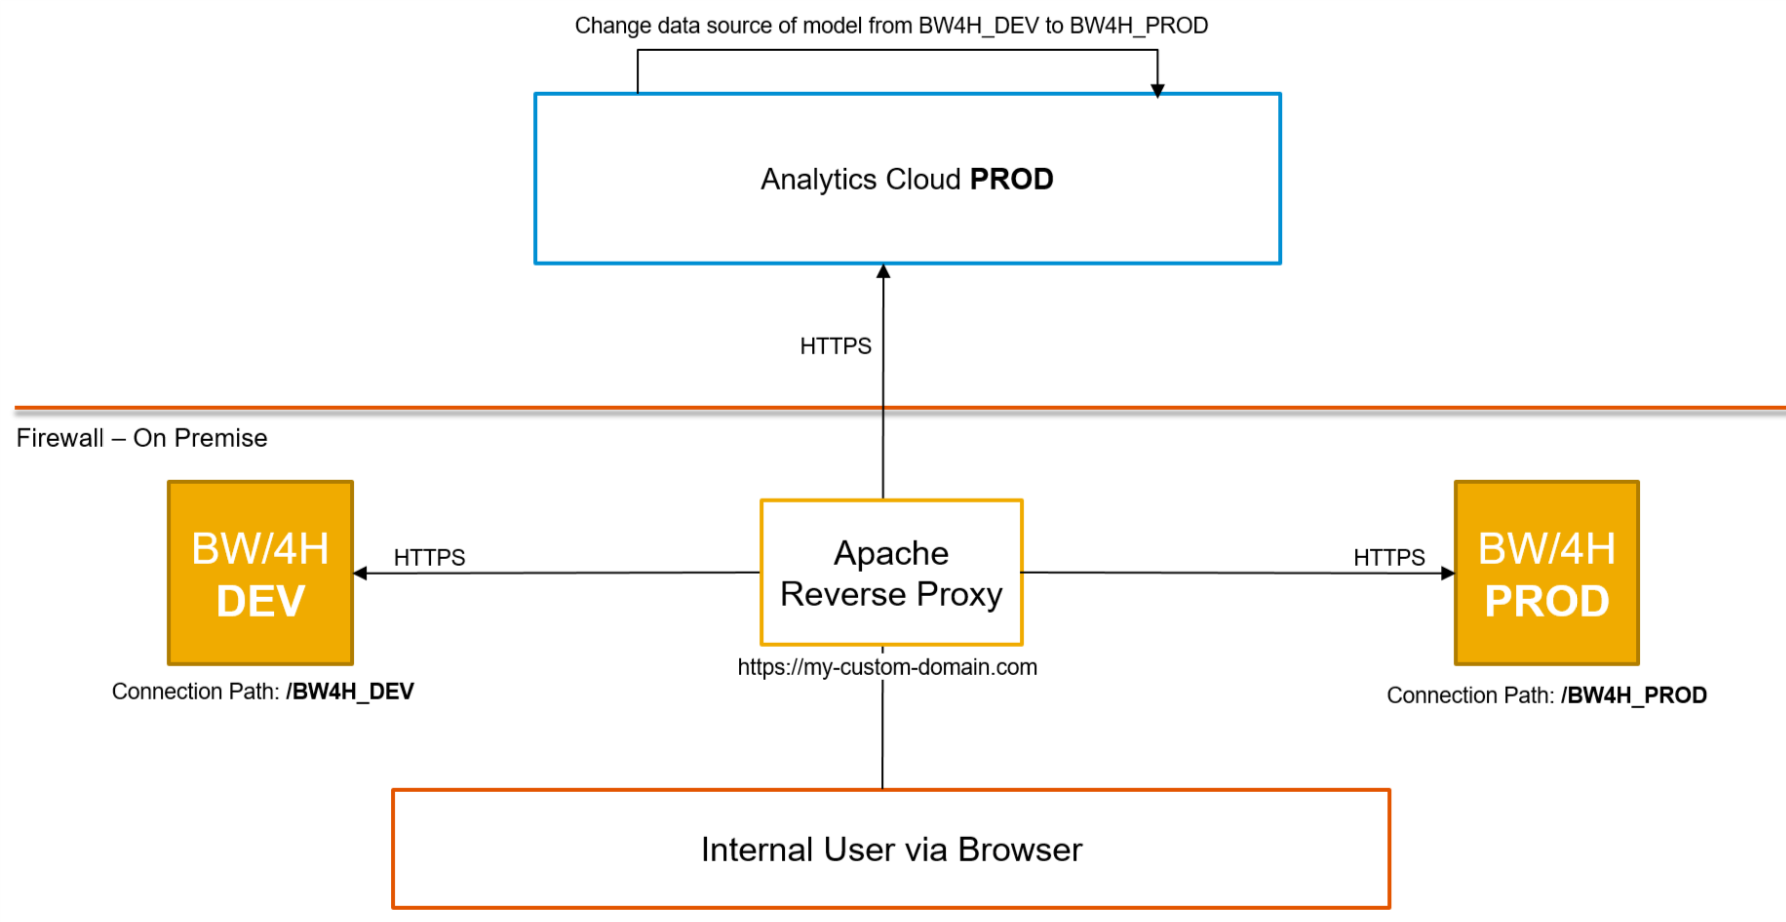 Sap Analytics Cloud Live Data Connection To Bw 4hana Blogs Switch That Redirects Current And Therefore Switches Off The Source Of Transferring Content In Sac From Dev Prod Requires You Only Change An Model Bw4h